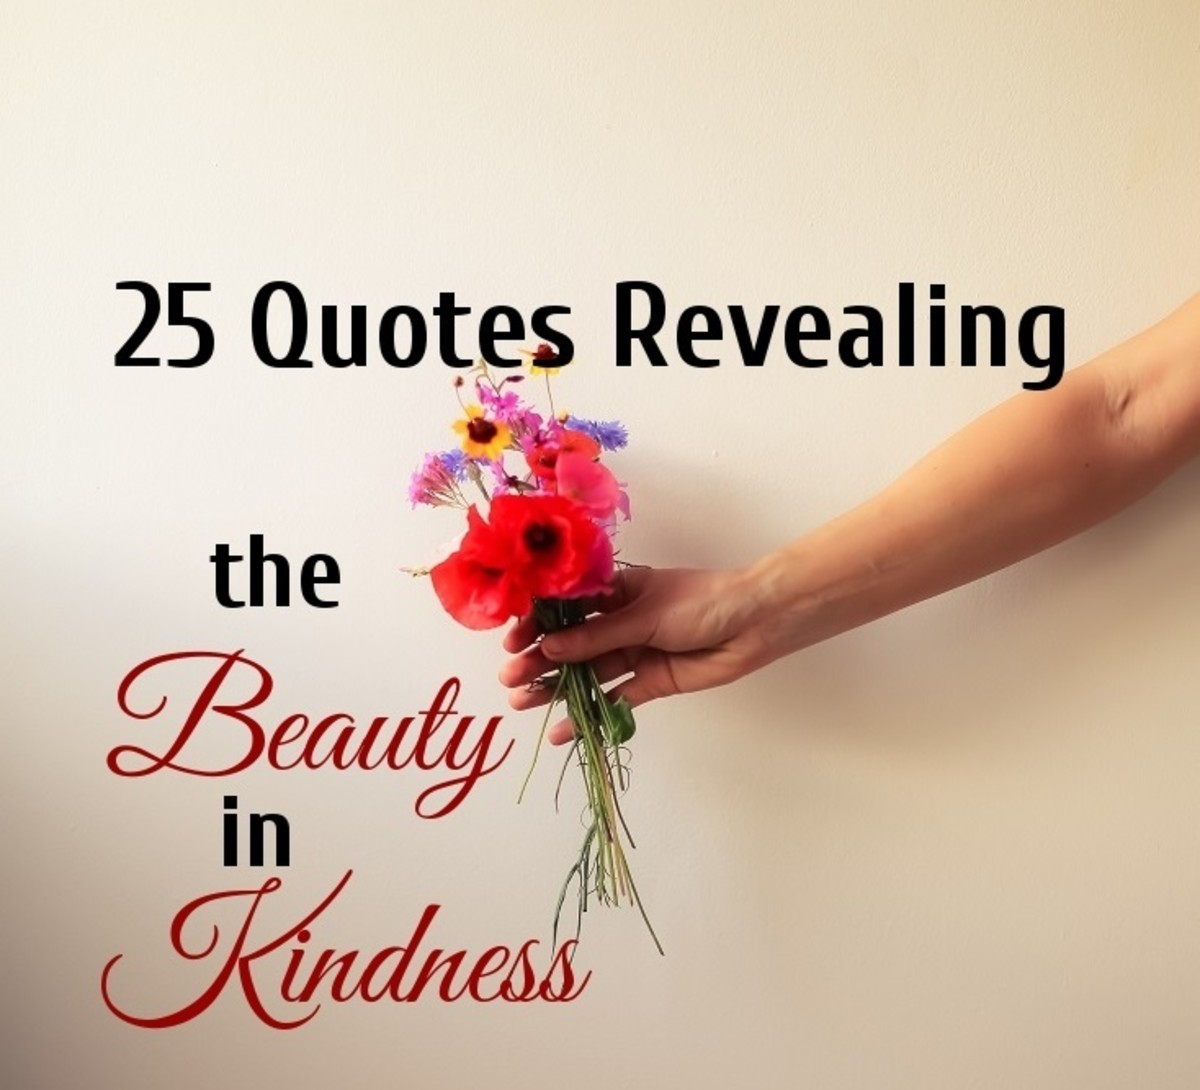 A sense of beauty exudes from every act of kindness.